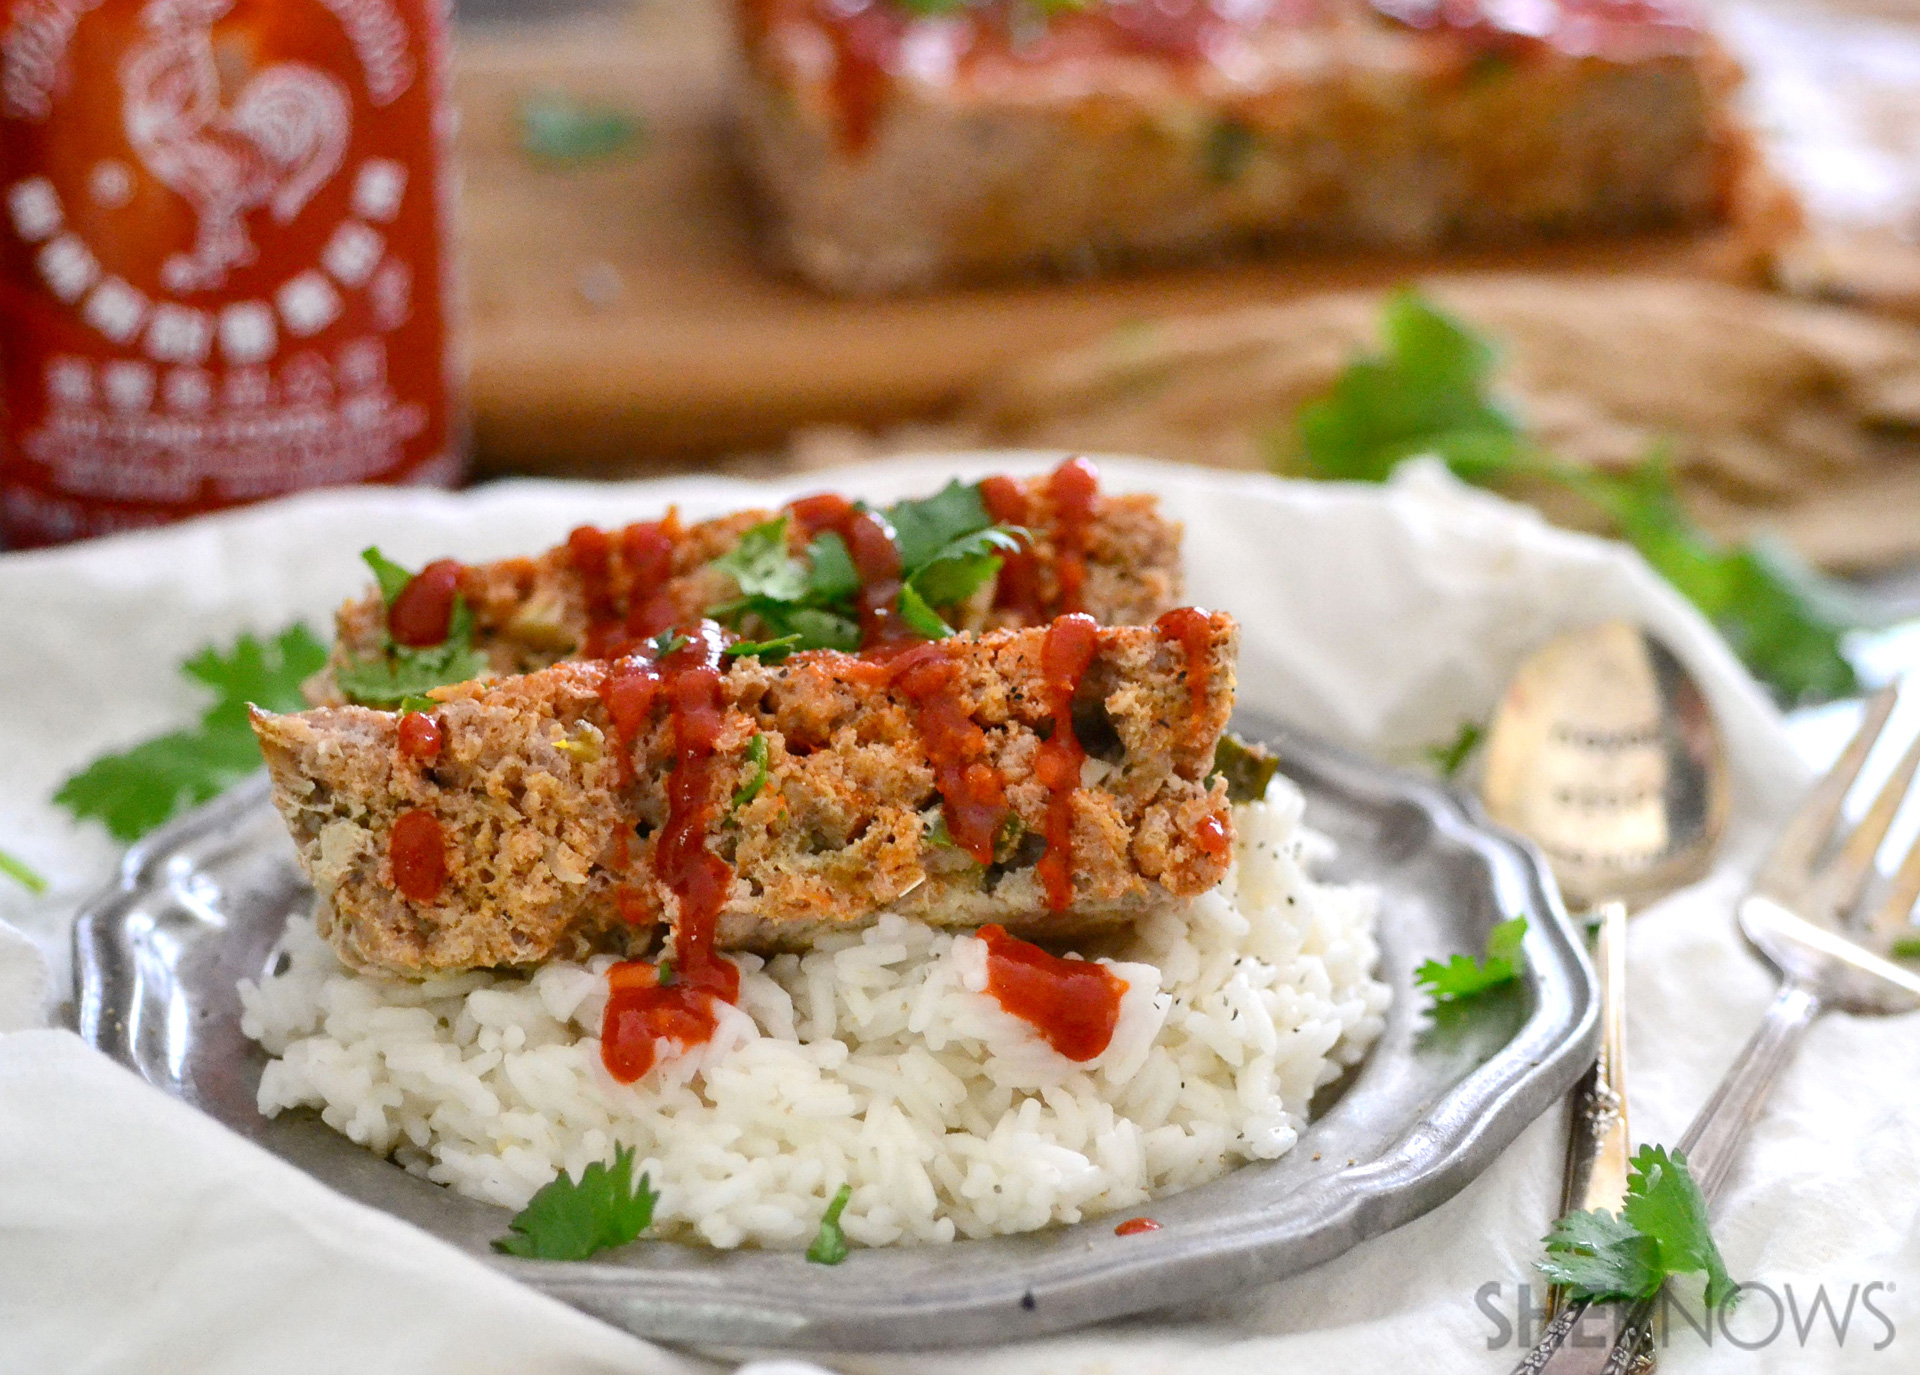 Thai spiced meatloaf recipe